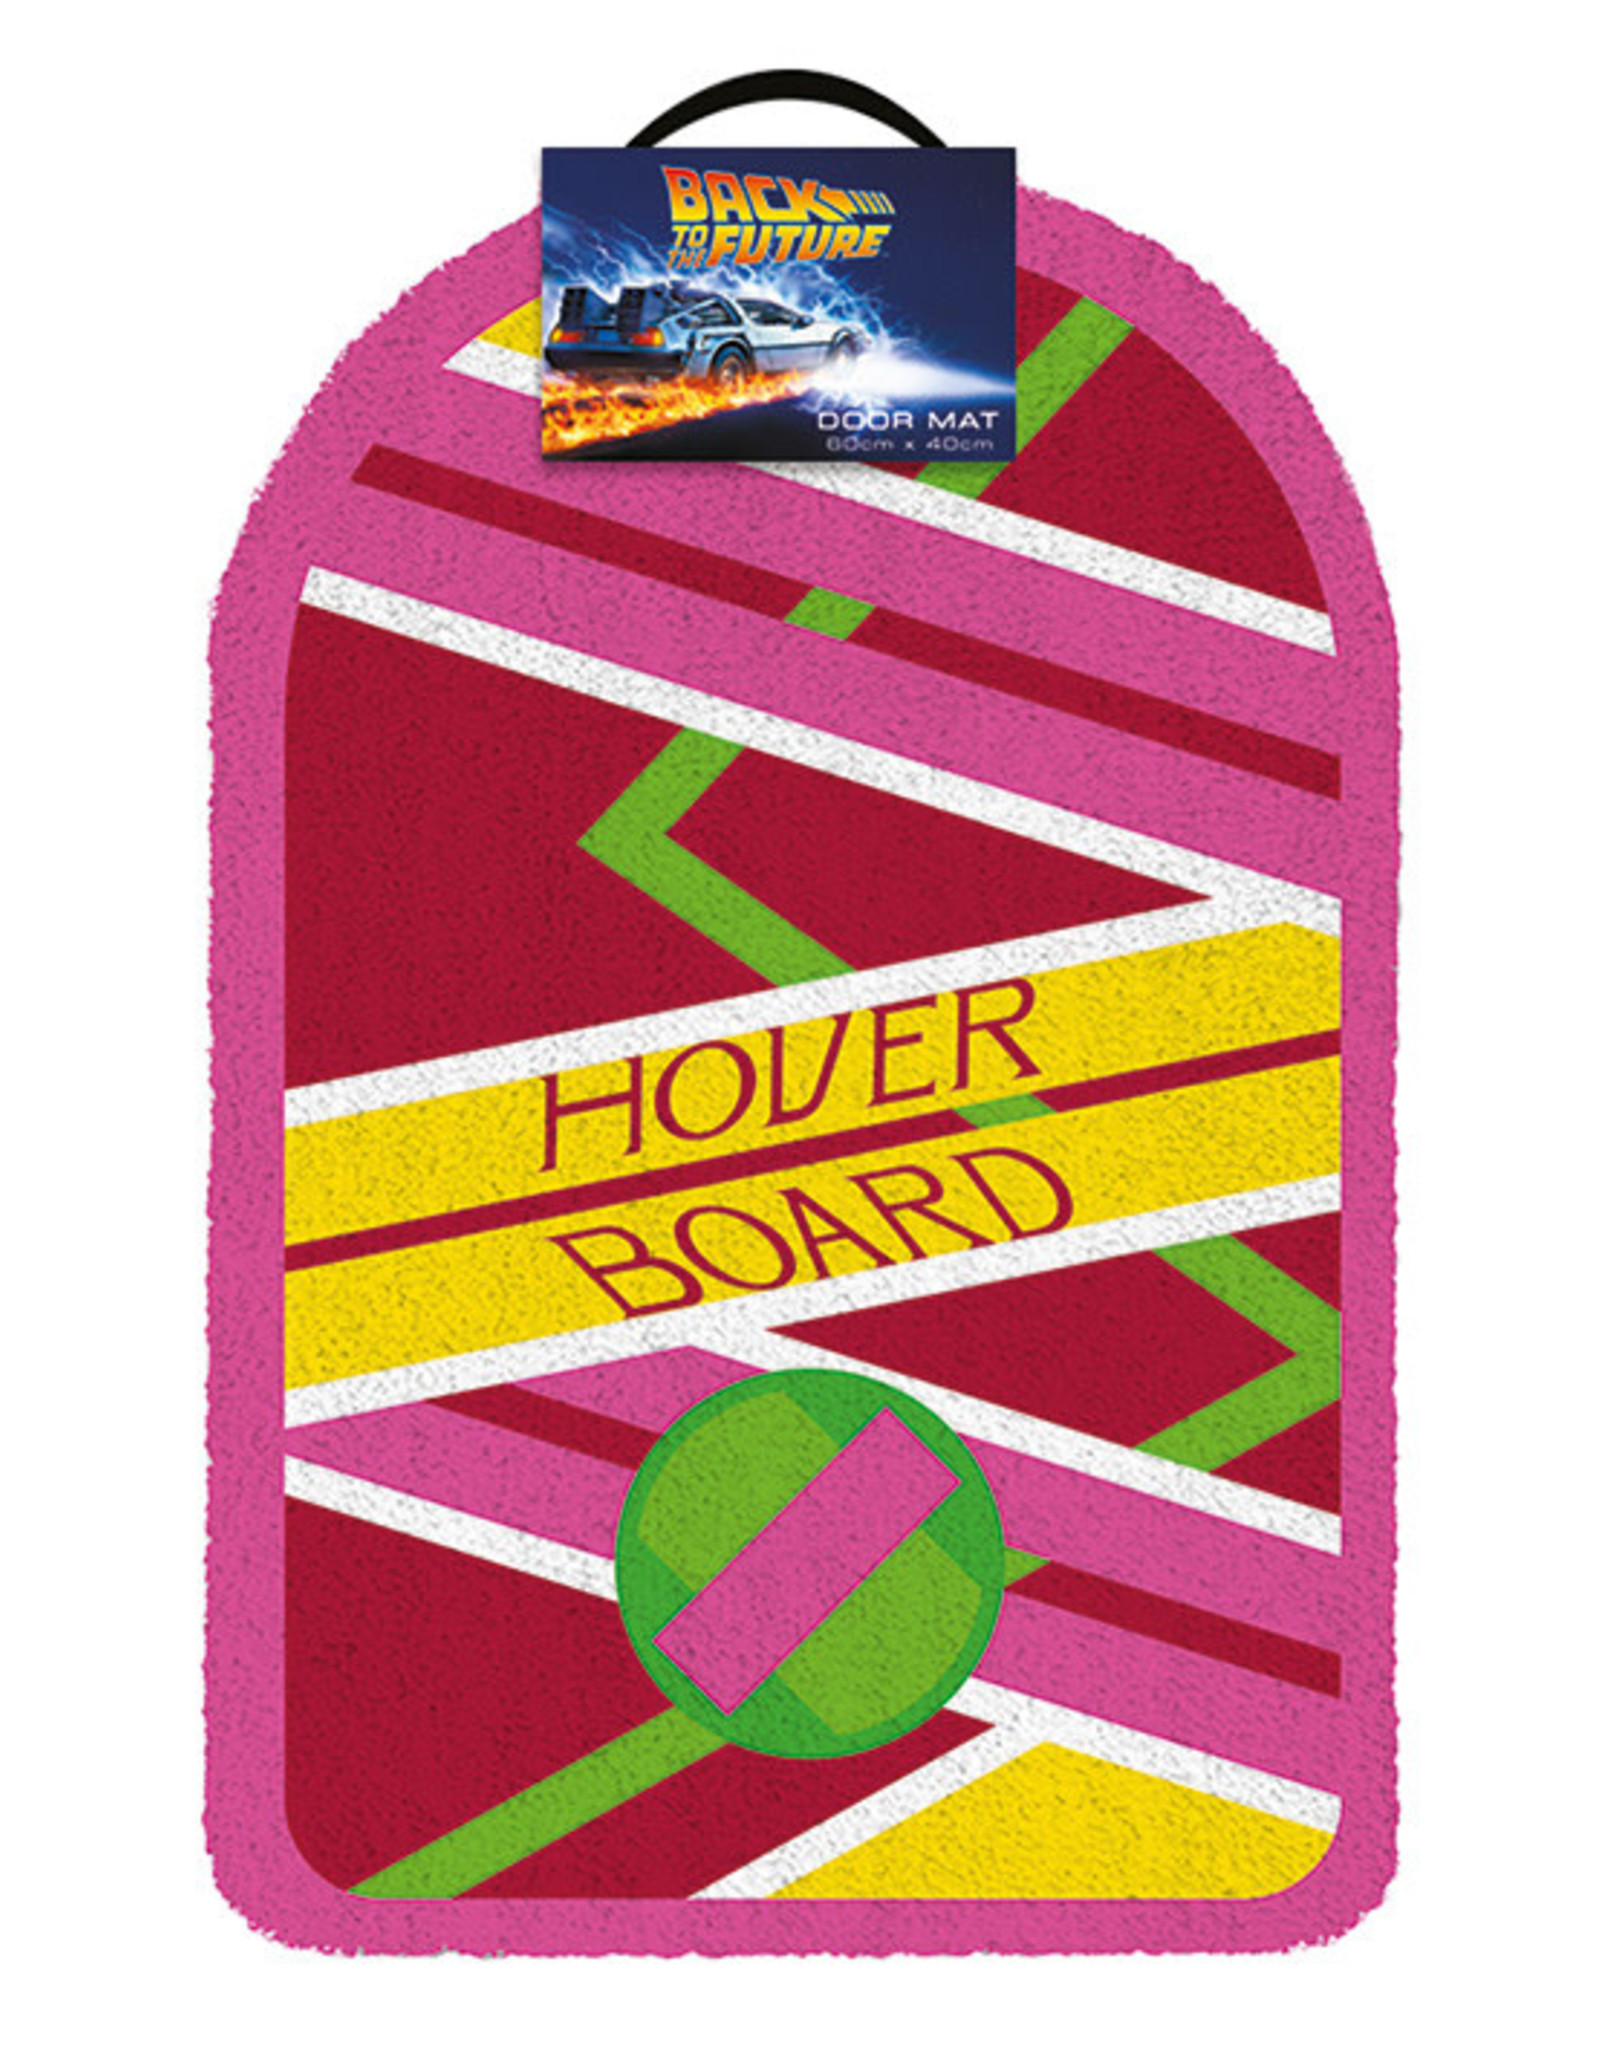 Pyramid International BACK TO THE FUTURE Doormat - Hoverboard